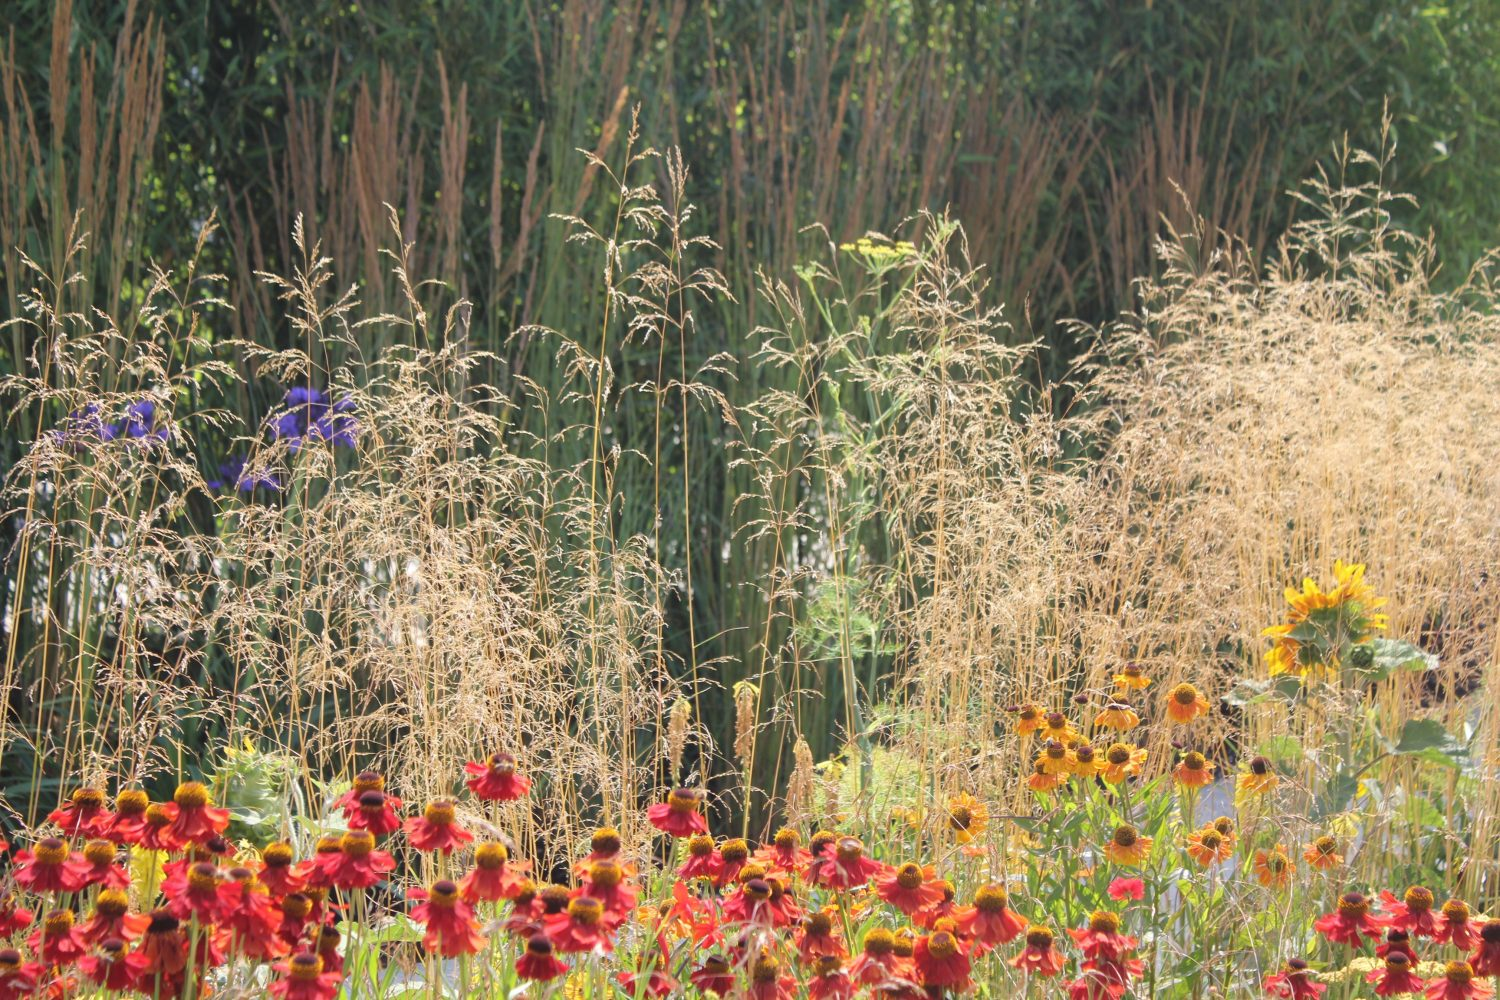 Heleniums and grass